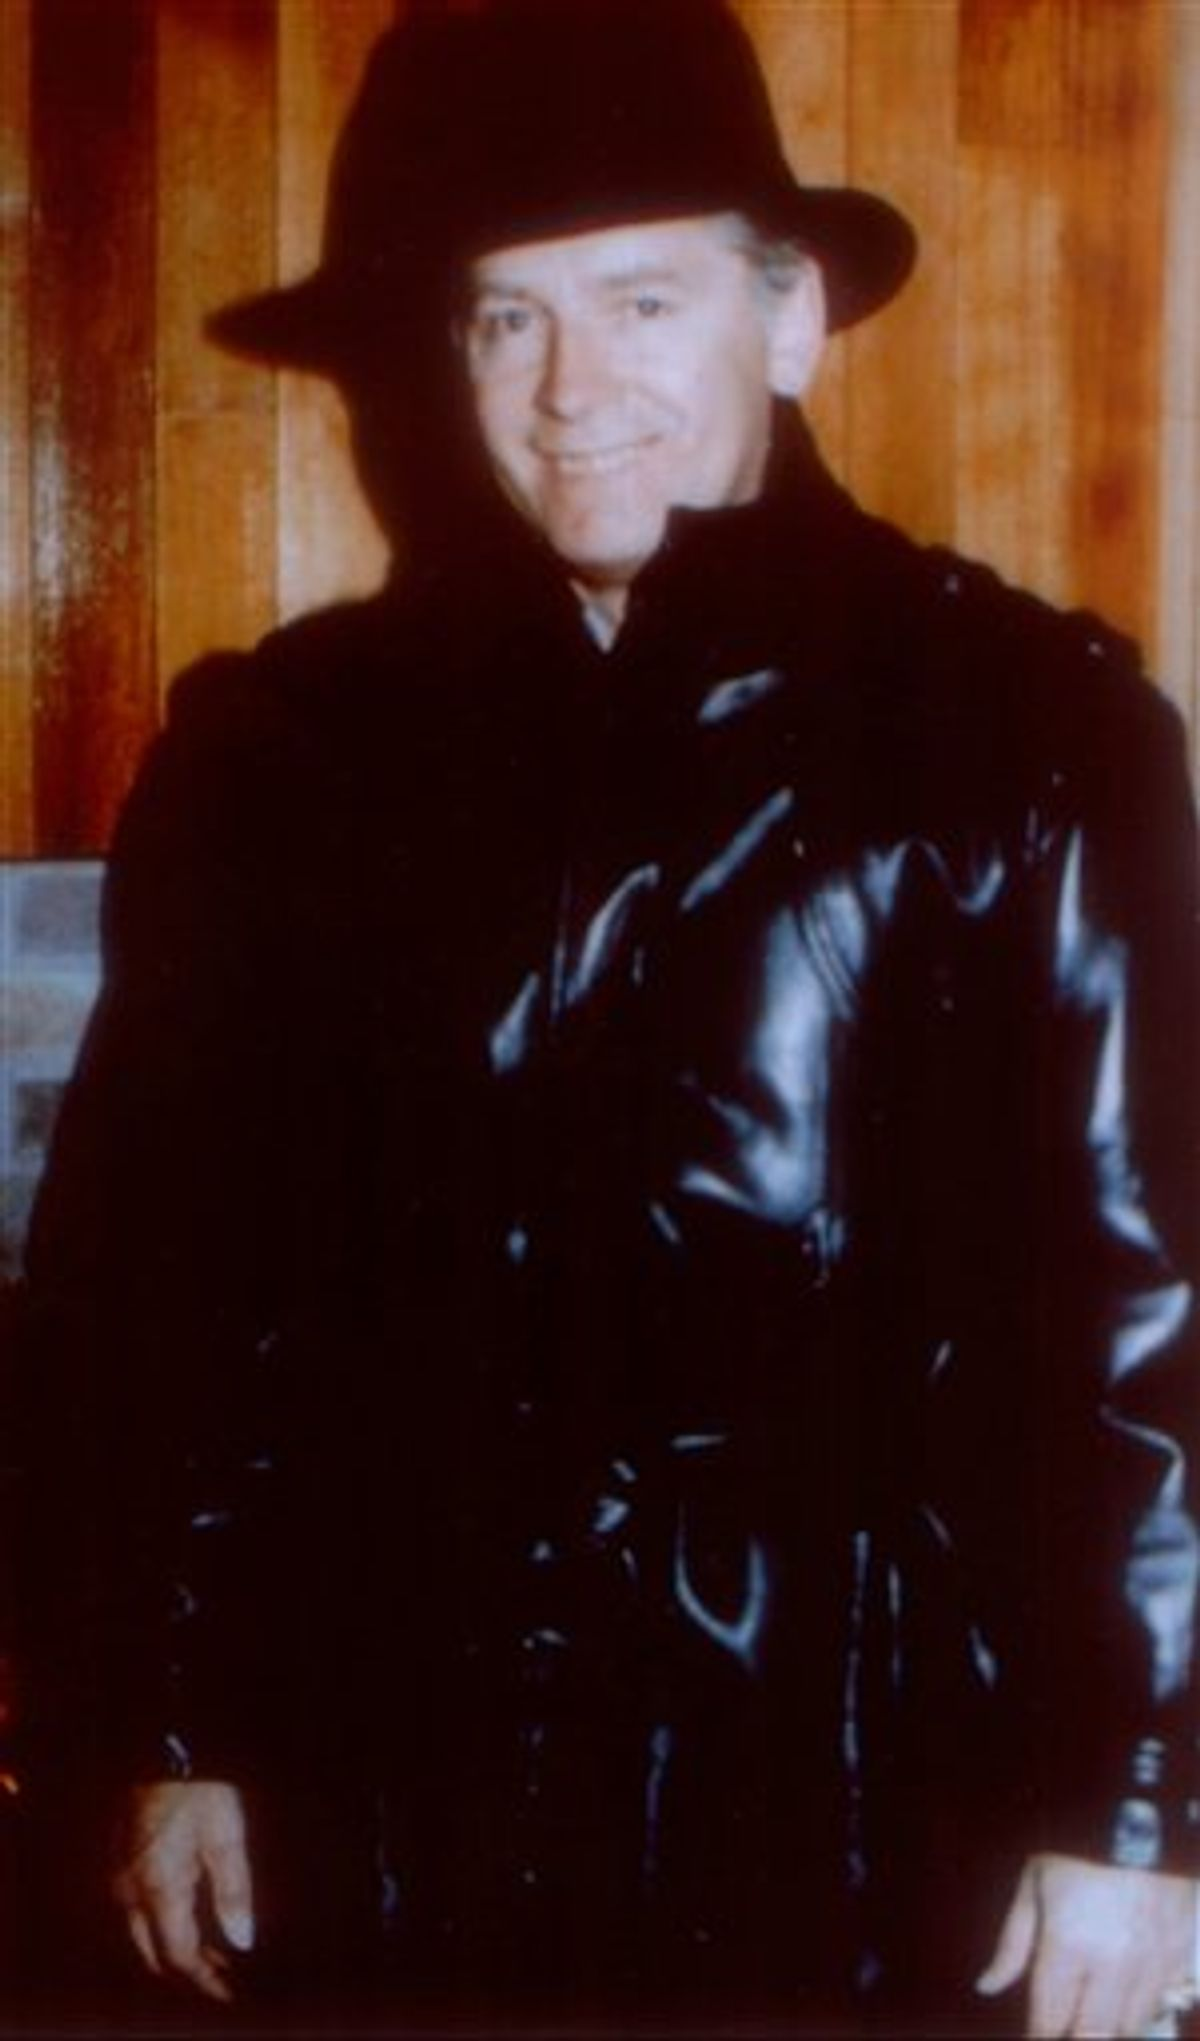 """FILE - This is an undated handout file photo the FBI  released in this Dec. 30, 1998 showing reputed Boston mobster and fugitive James J. """"Whitey"""" Bulger. Bulger, a notorious Boston gangster on the FBI's """"Ten Most Wanted"""" list for his alleged role in 19 murders, has been captured near Los Angeles after living on the run for 16 years, authorities said Wednesday June 22, 2011. (AP Photo/FBI Handout, File) (AP)"""